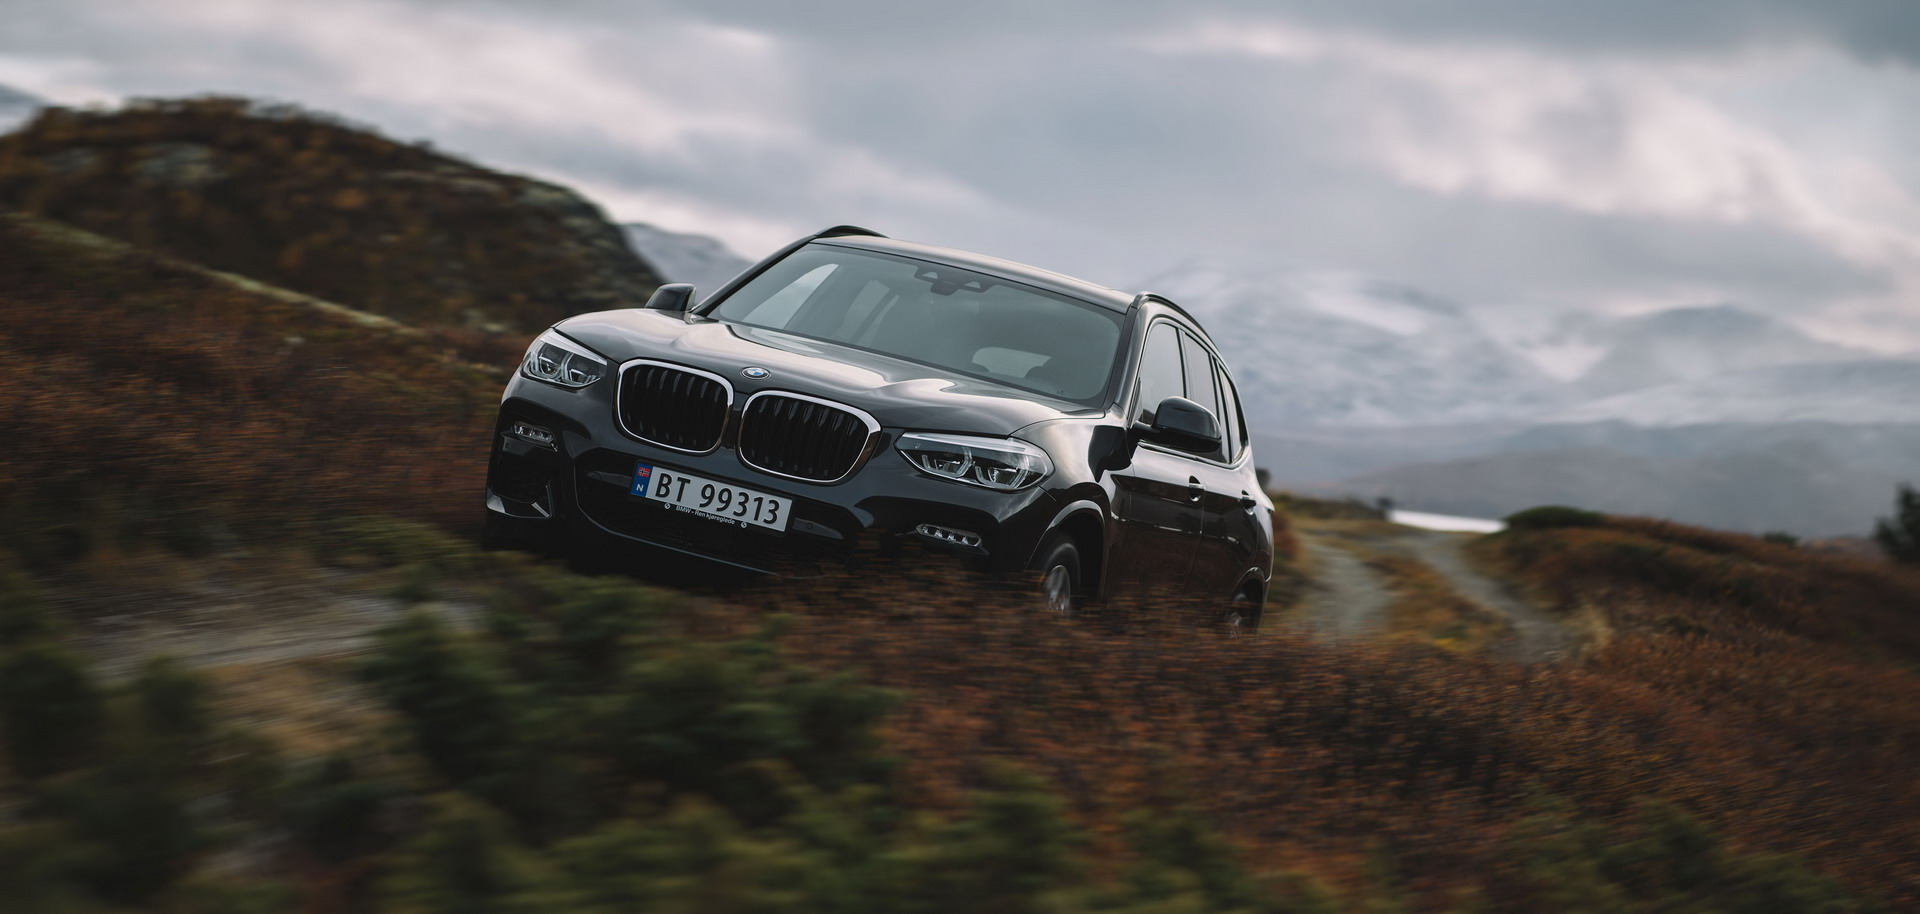 Norway Postcards: BMW X3 joins Traveller's Tales team to help explore Norway